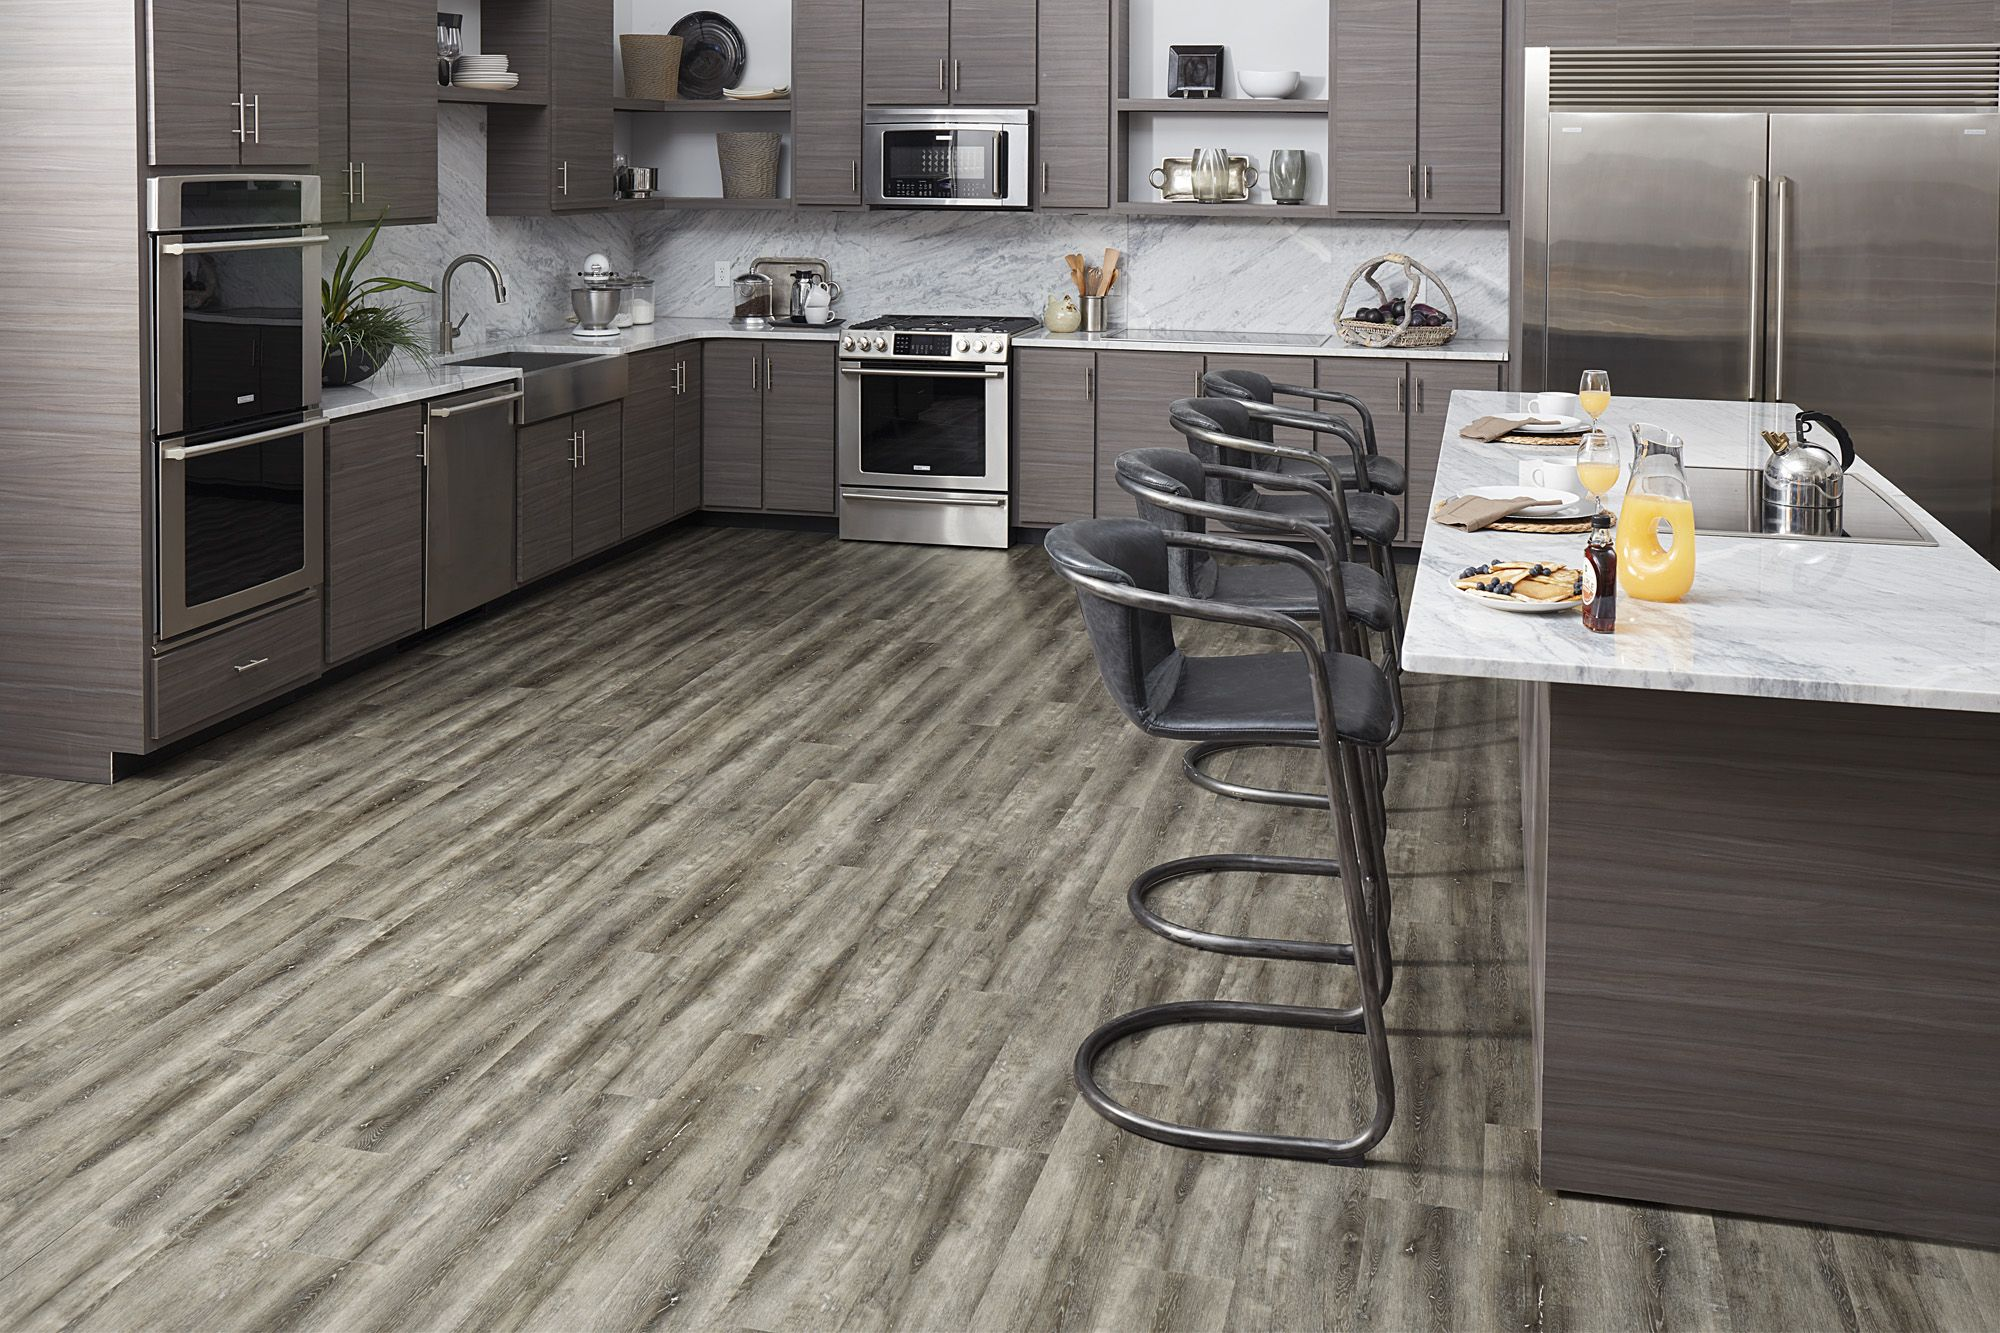 c xd rs lvp cherry liquidators room can tranquility scene brazilian lumber flooring floors